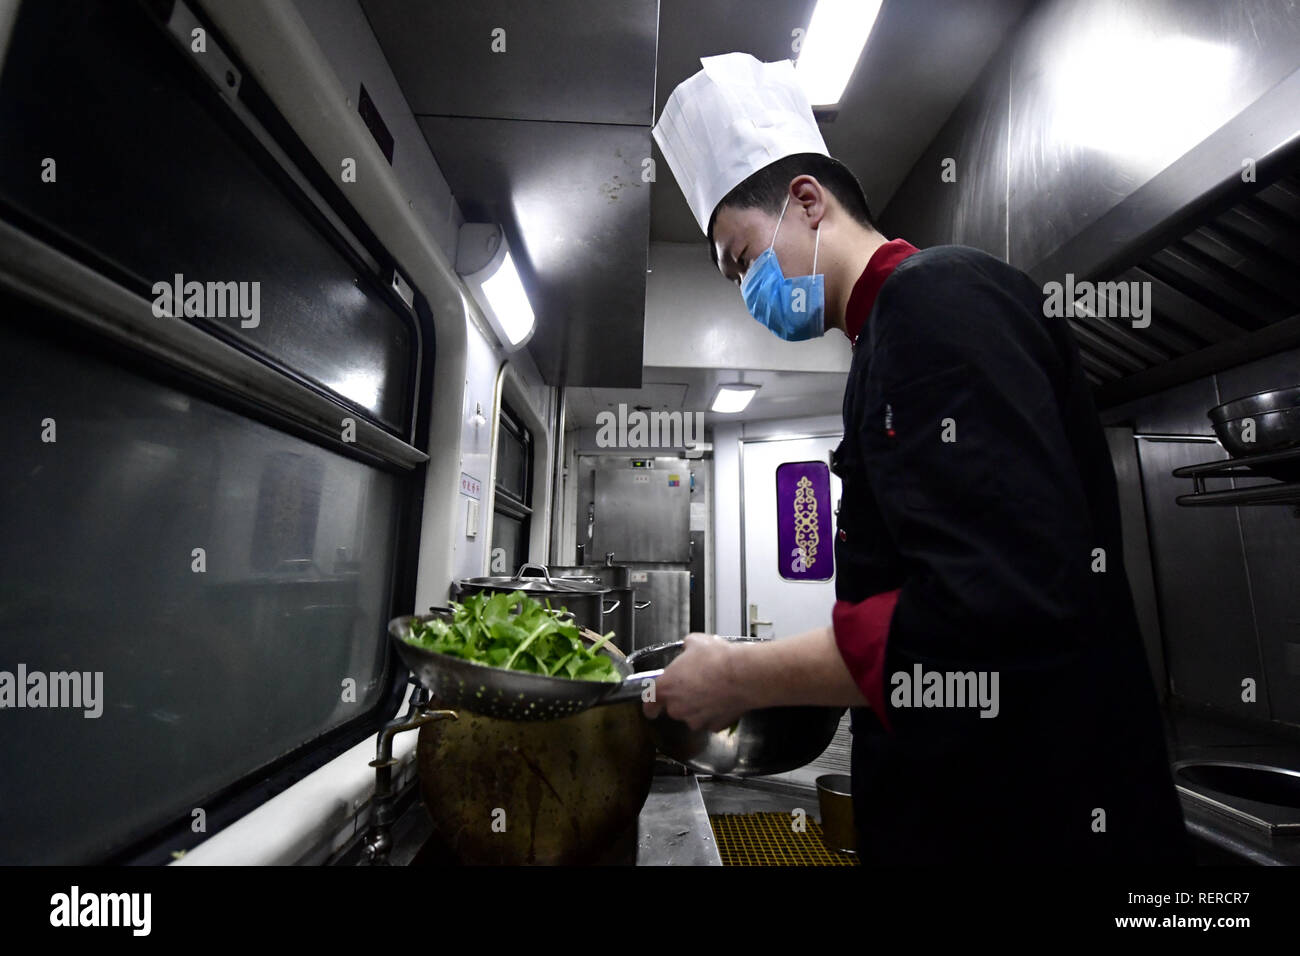 Beijing, China. 21st Jan, 2019. A cook prepares pot-planted vegetable aboard the 'Tangzhugudao' theme train which runs from Xining to Xigaze on the Qinghai-Tibet Railway, on Jan. 21, 2019. Credit: Zhang Long/Xinhua/Alamy Live News - Stock Image